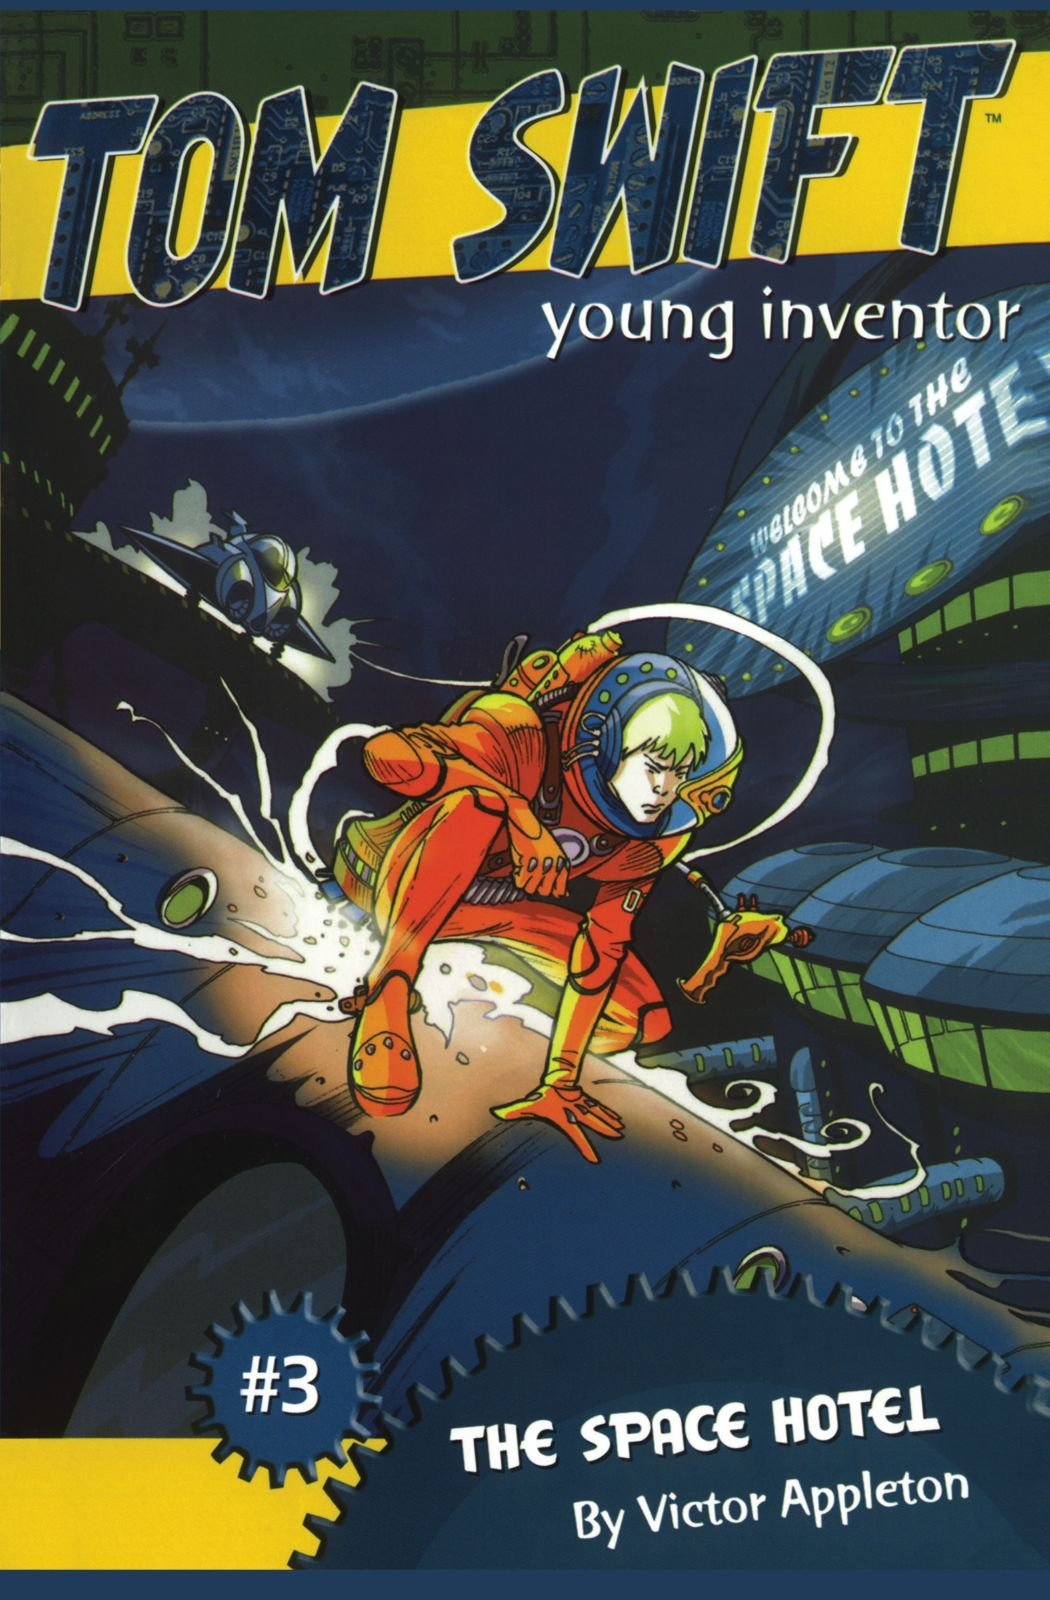 Read Online The Space Hotel (Tom Swift, Young Inventor) PDF Text fb2 book